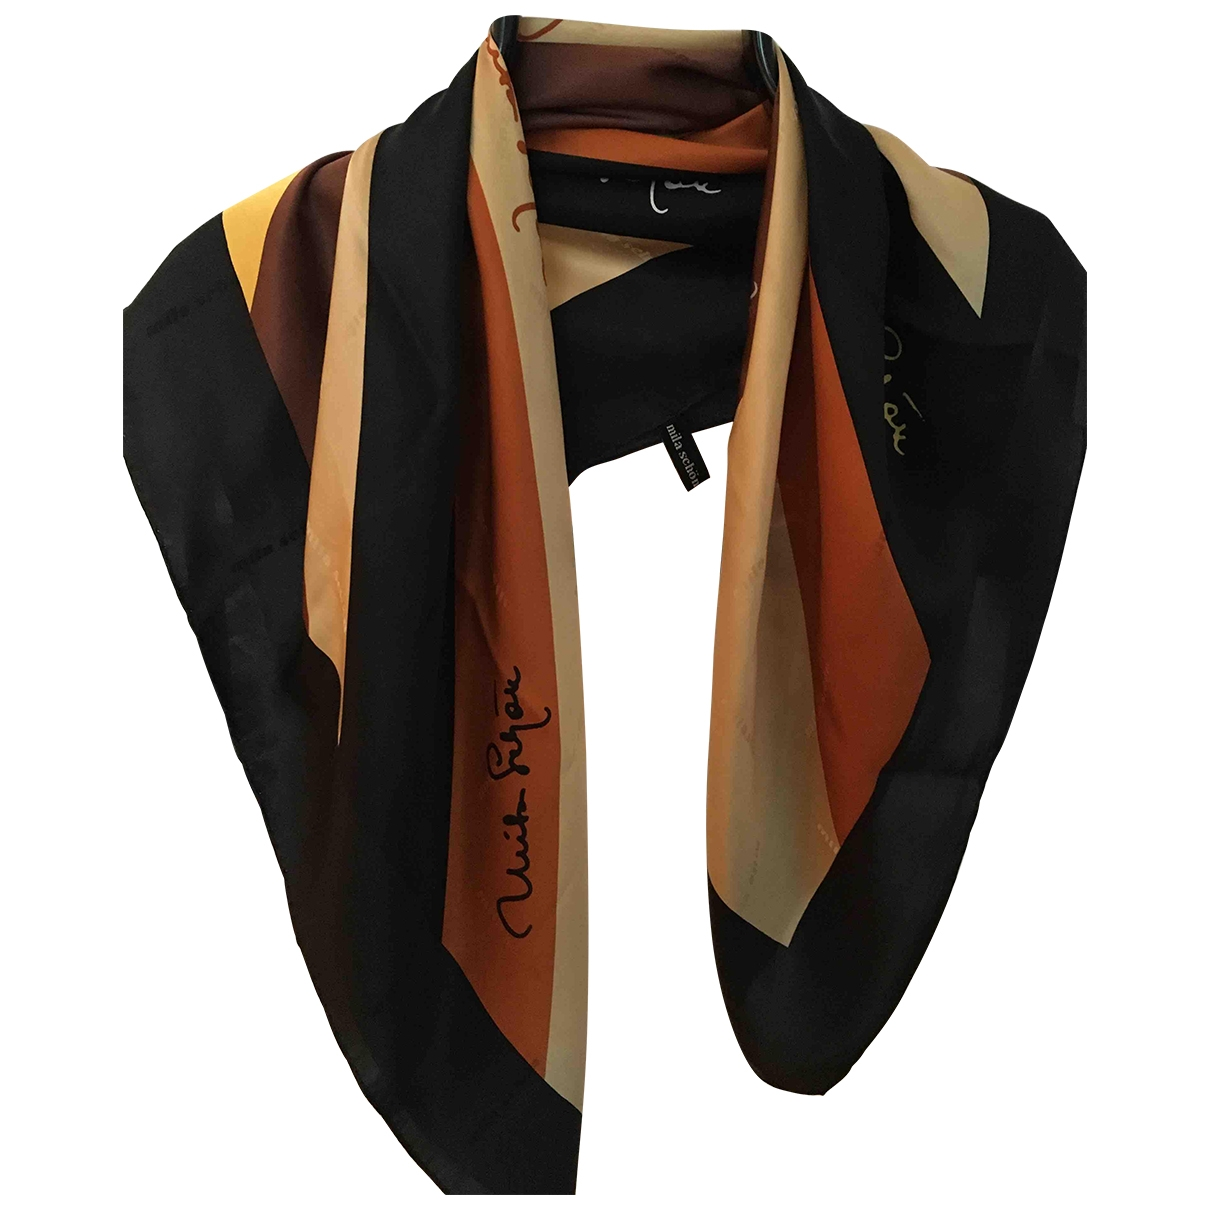 Mila Schön Concept \N Silk scarf for Women \N